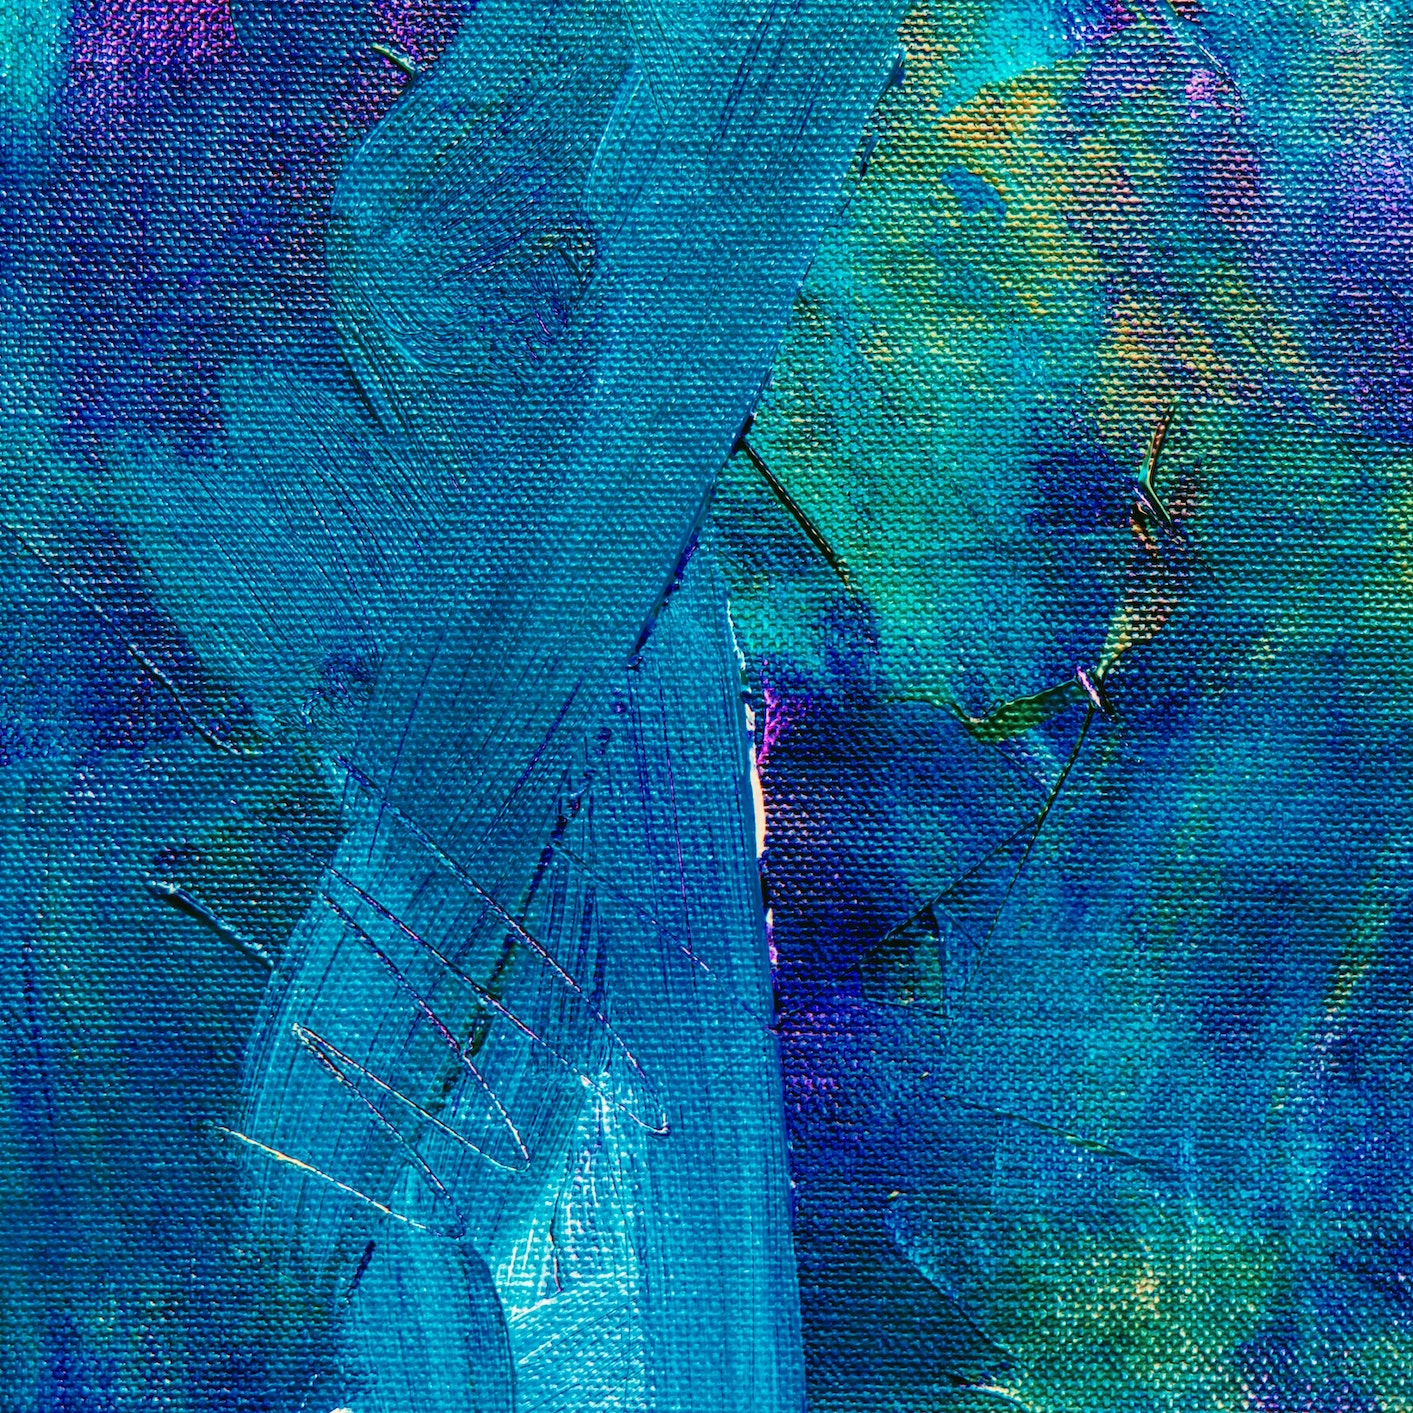 multicolored-abstract-painting-1509534-1